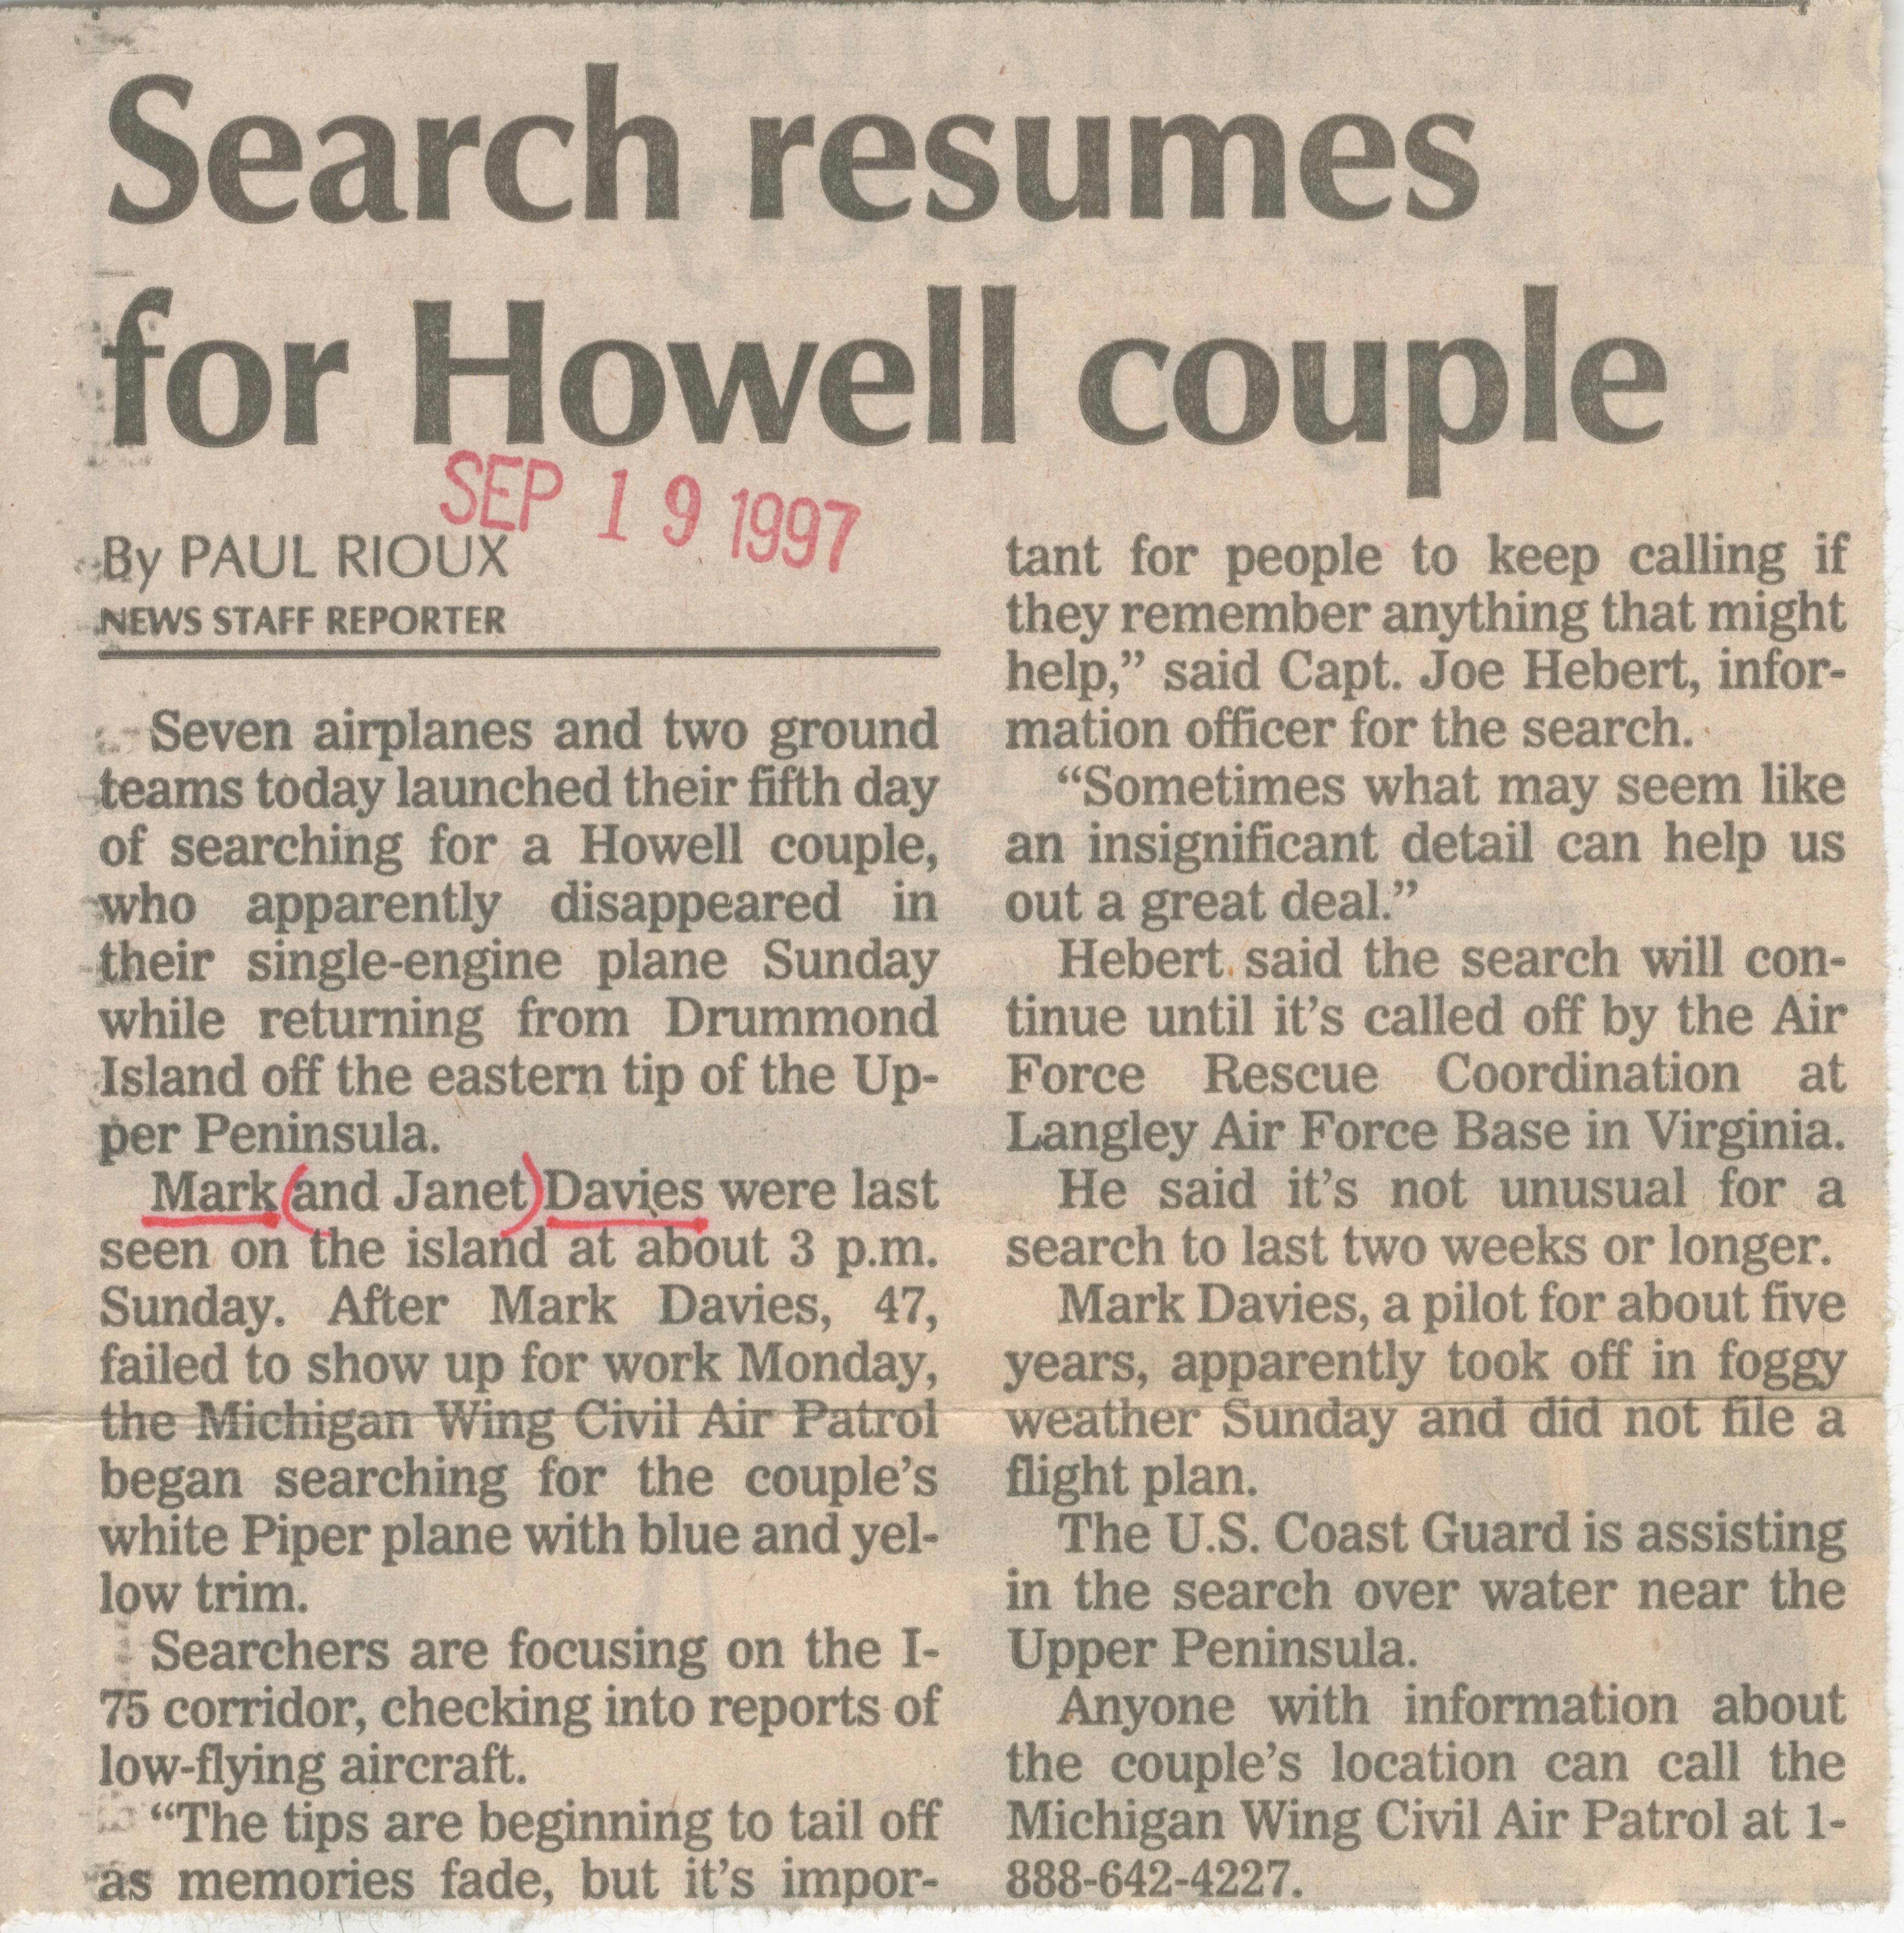 Search Resumes for Howell Couple image